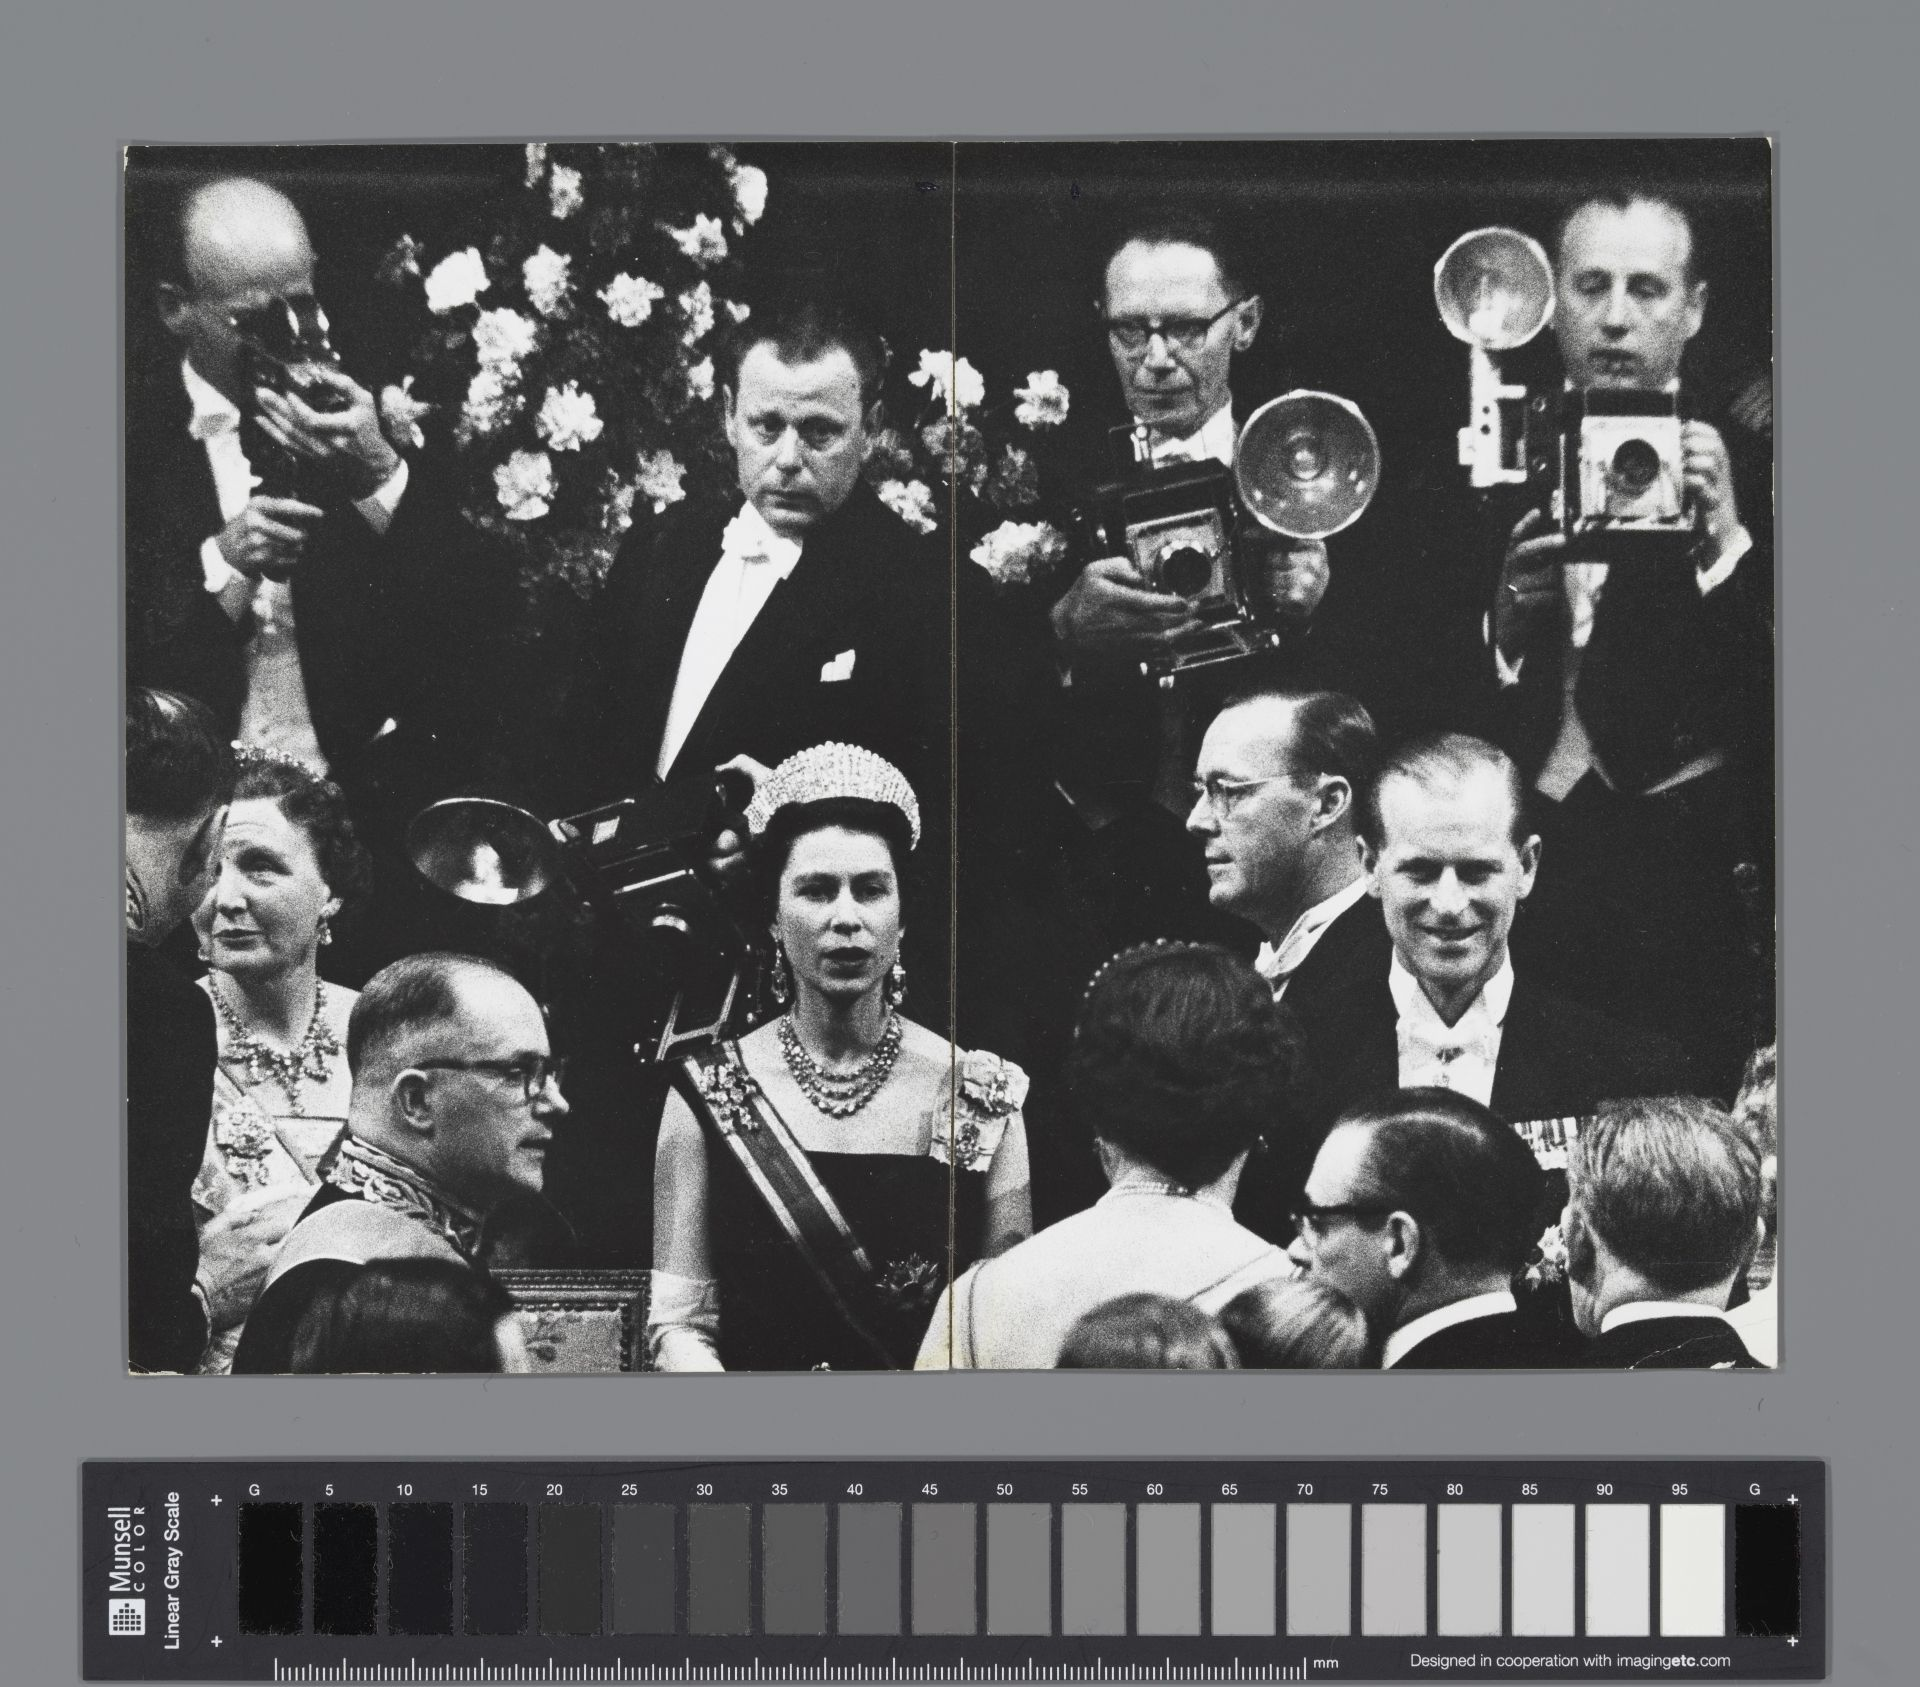 """Ed van der Elsken's 'State visit of the British Queen Elizabeth and her husband, Prince Philip, to the Netherlands, Ridderzaal, The Hague 26 March 1958'  © Image Courtesy of theRijksmuseum and the Nederlands Fotomuseum  For stories related to the photo book """"feest"""" by Ed van der Elsken (2020)"""